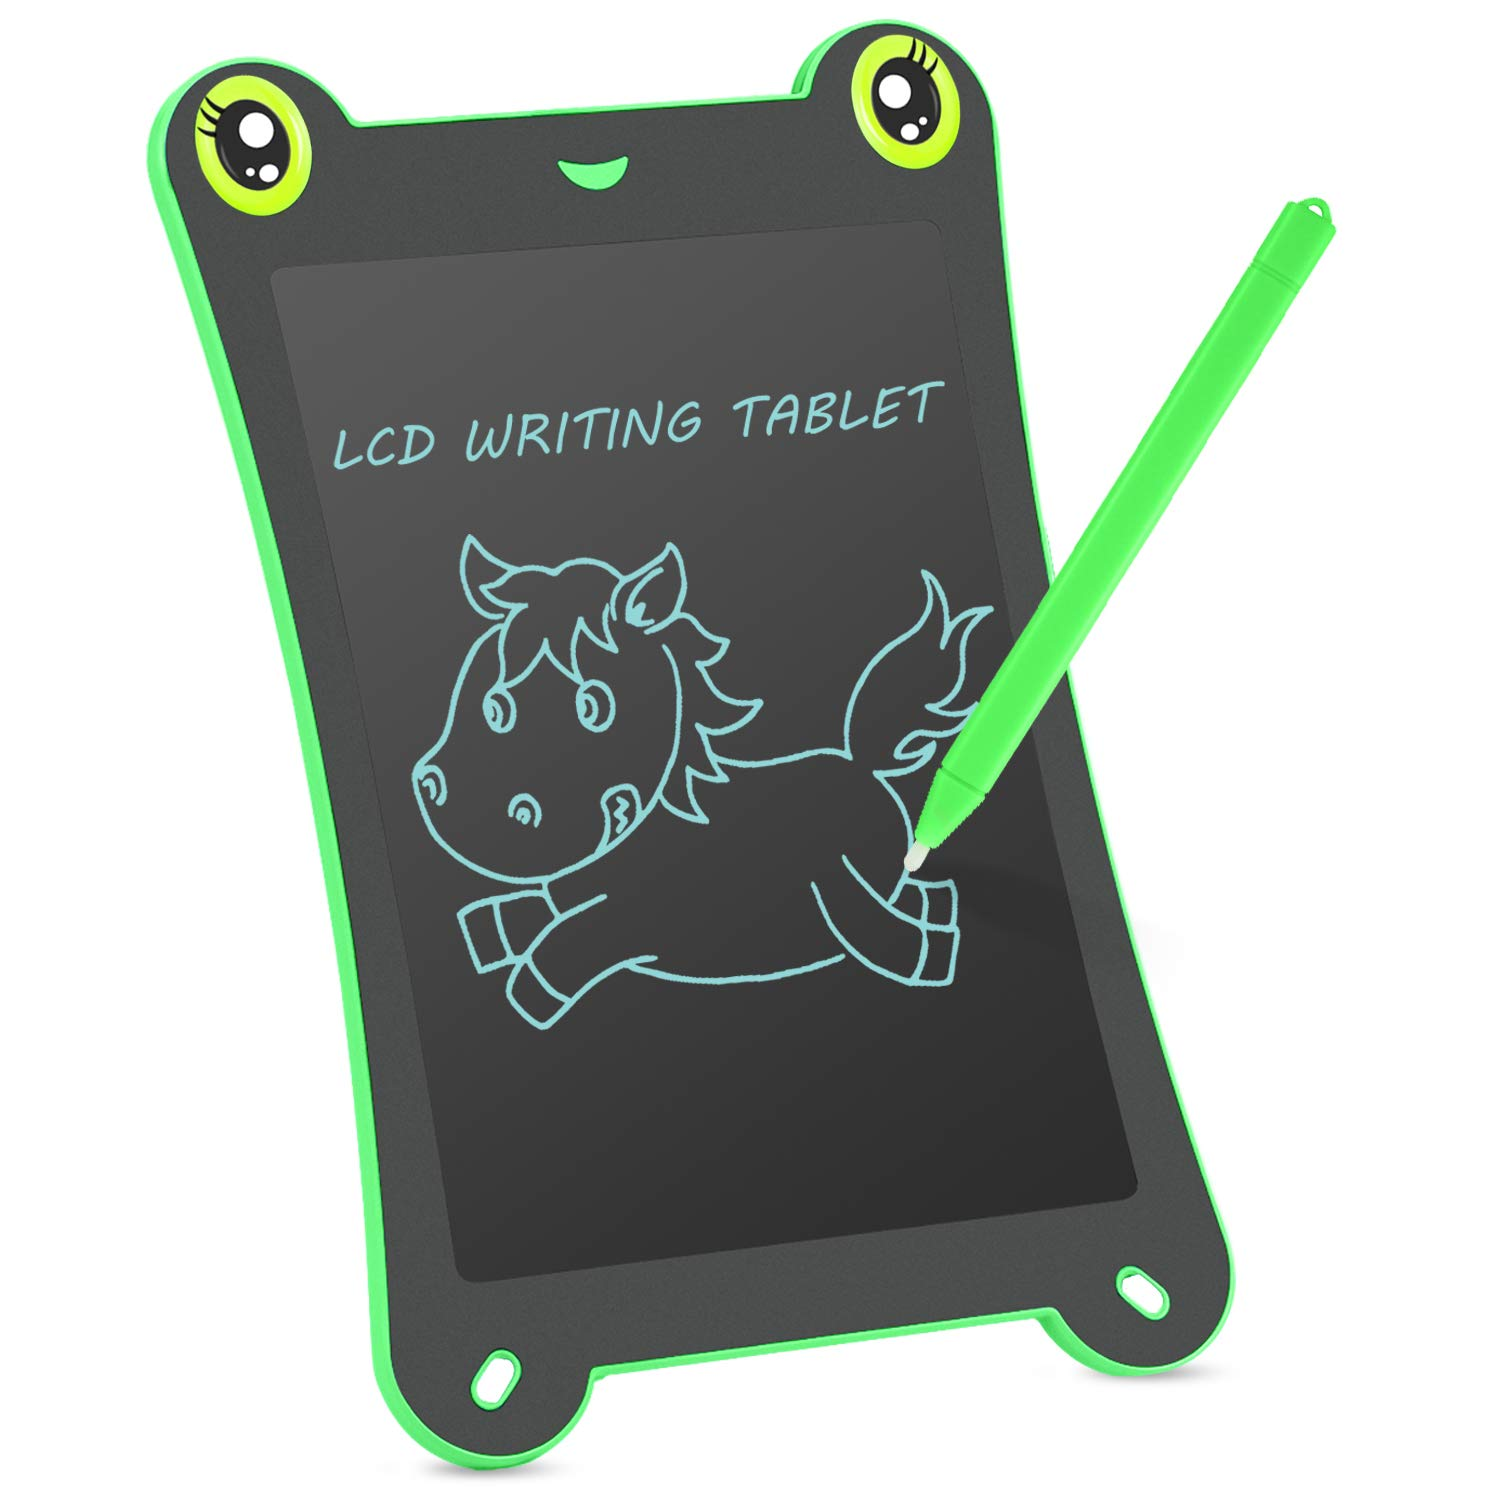 NEWYES Children's Cute Board LCD Writing Tablet NYF850 8.5 inch Frog Handwriting Tablet Graphic Drawing Board Digital Portable Magnetic Durable Touch Pad Boards for Kids 1 Year Warranty (Green-Frog) NY850F-GR